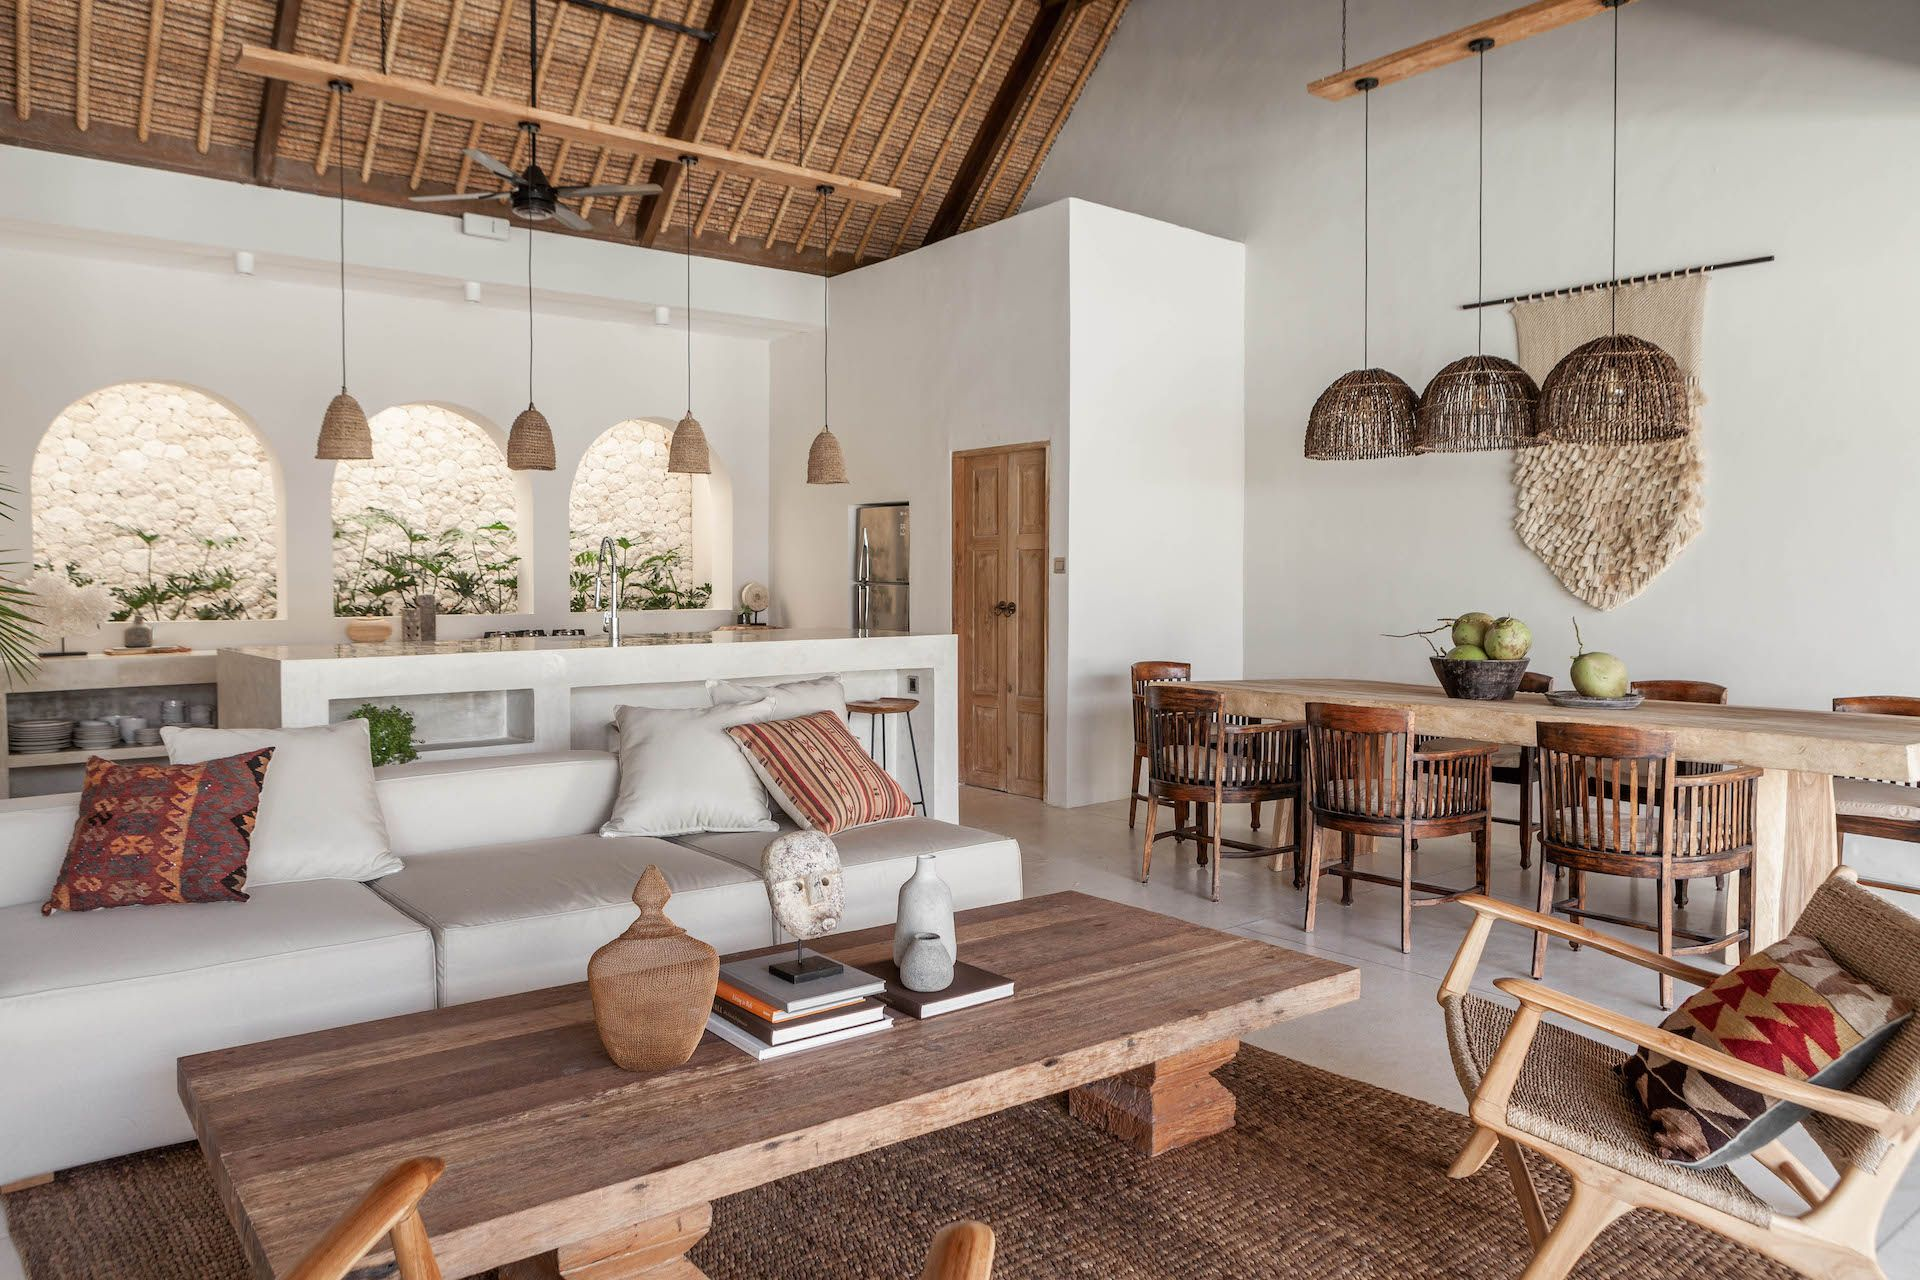 in 2020 Bali style home, Home interior